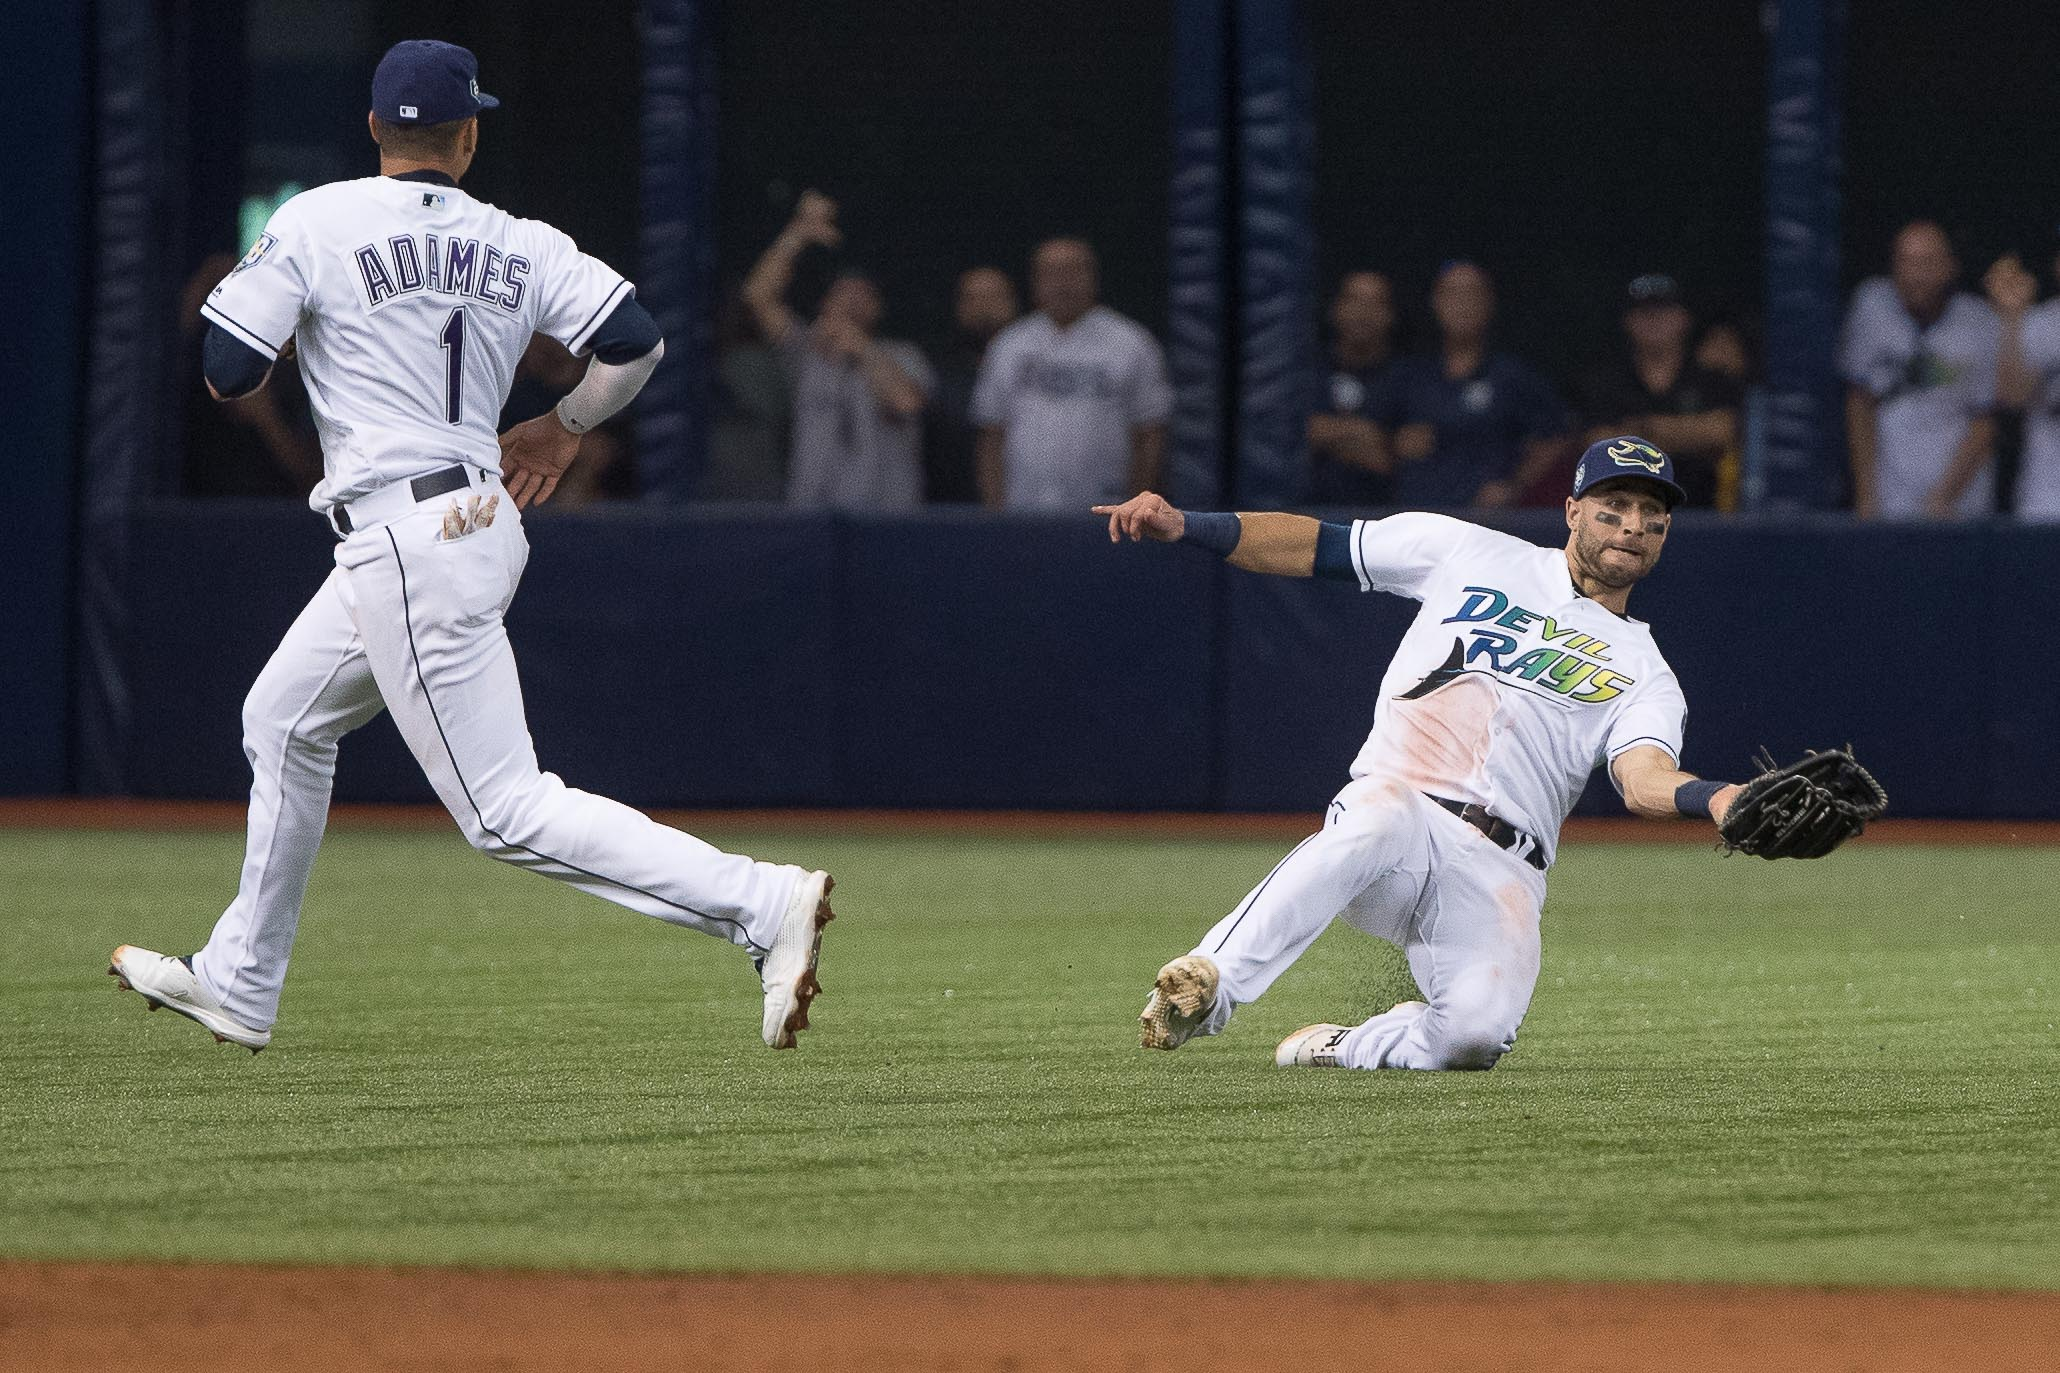 Kiermaier makes a sliding catch for the Rays.//STEVEN MUNCIE